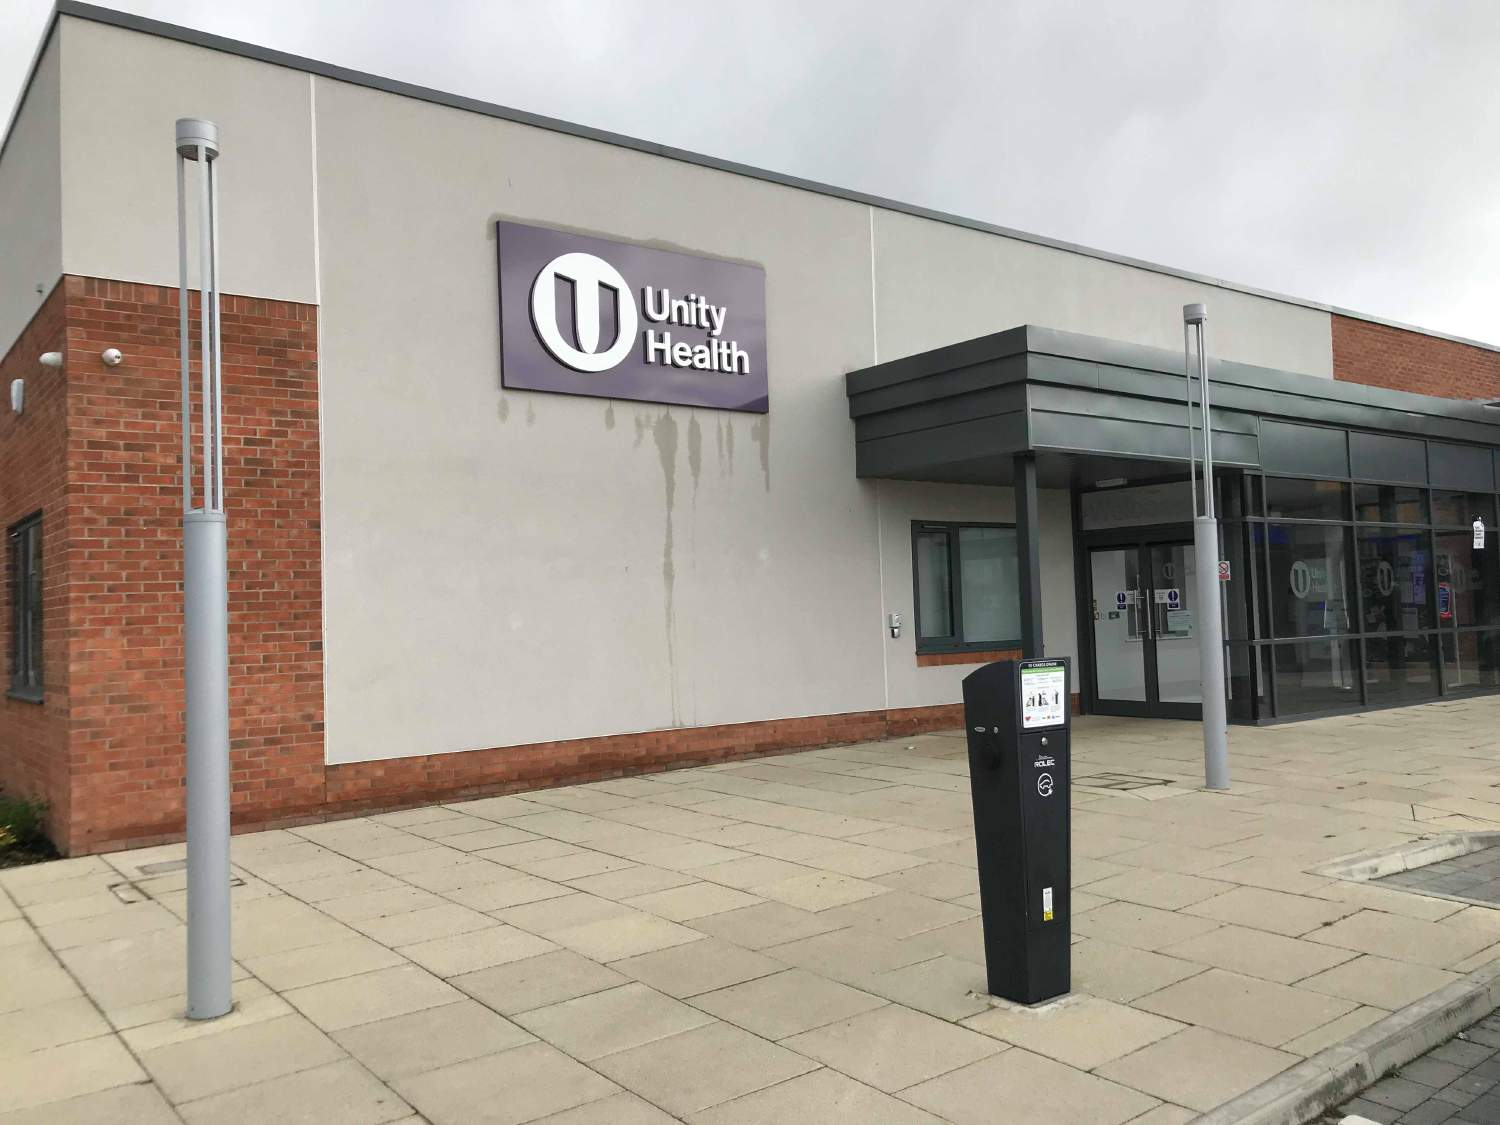 Unity Health awarded 'good' rating by CQC